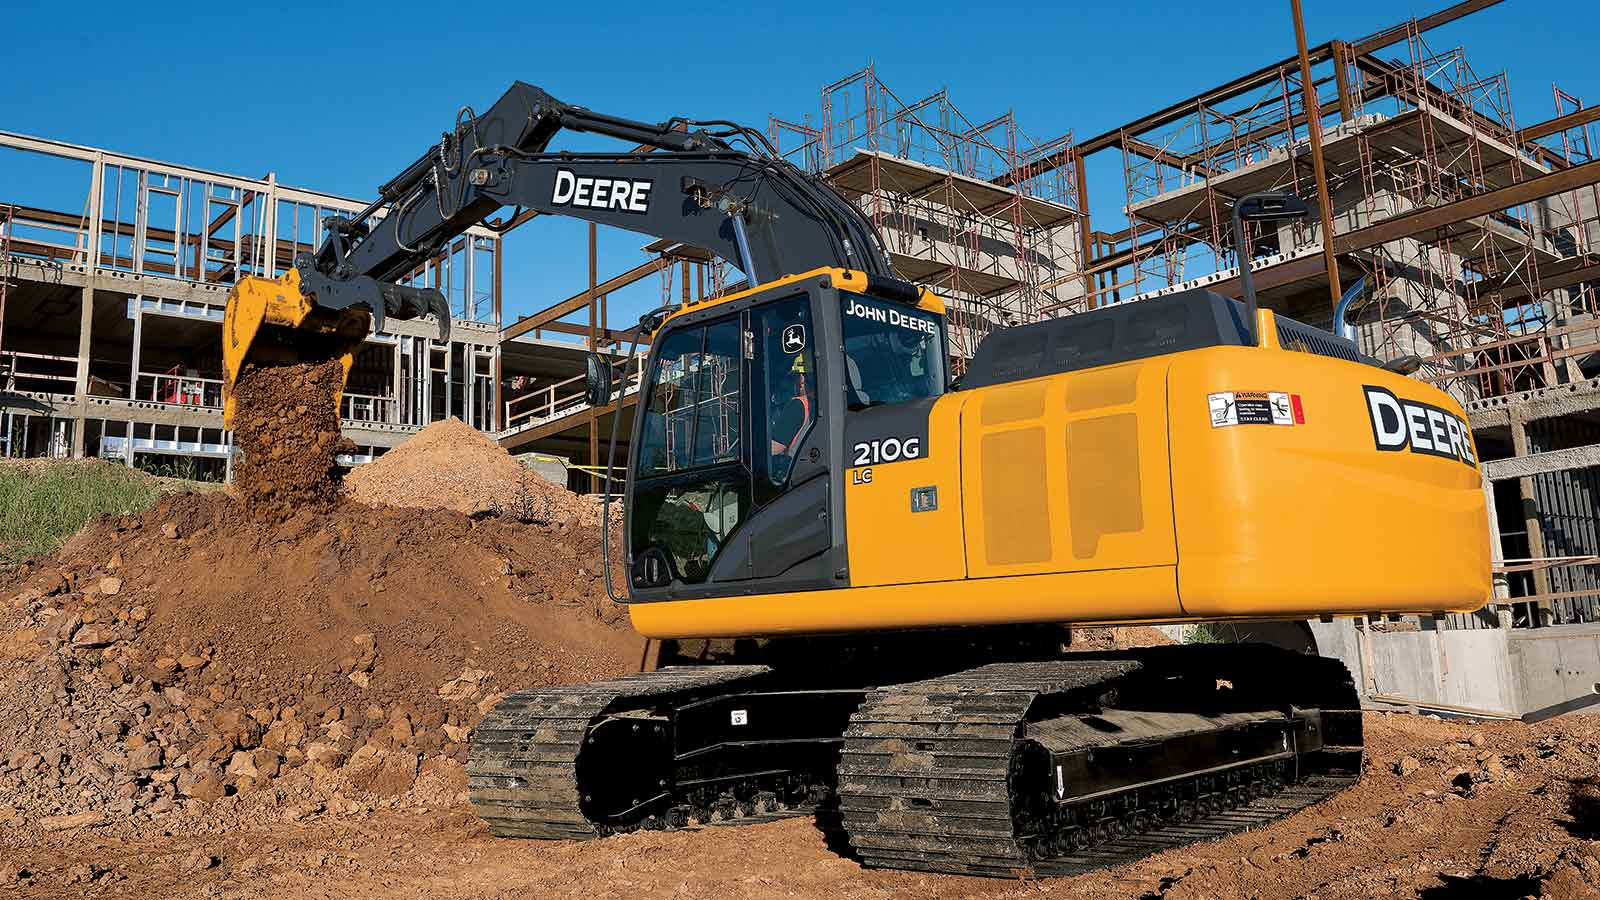 A John Deere 201G LC Excavator moves dirt on a commercial worksite.